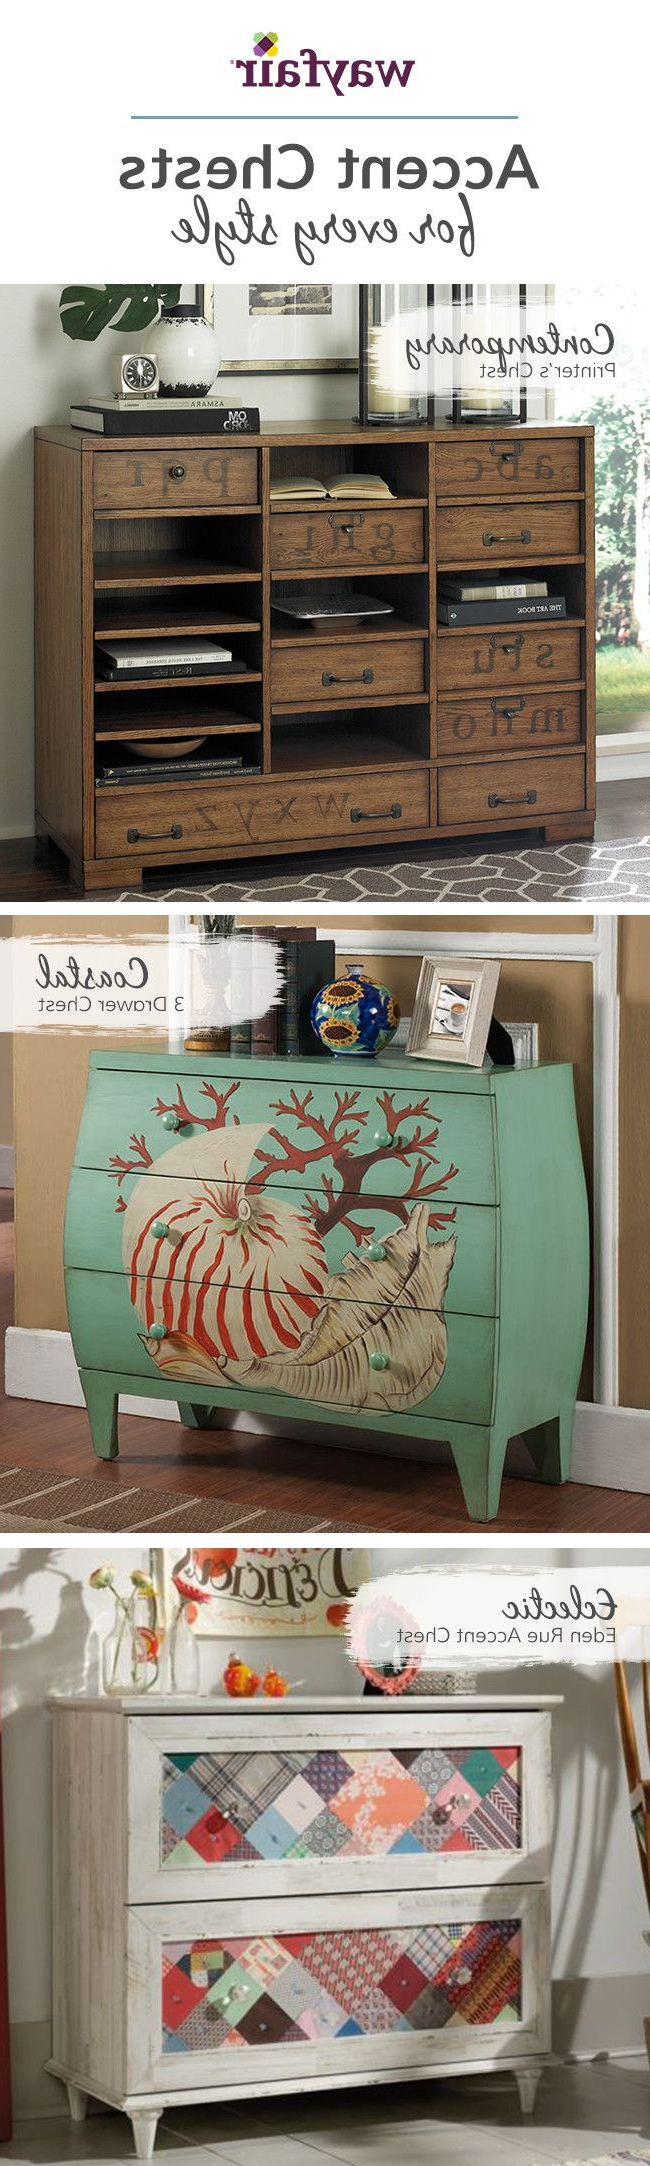 99 Best Things With Drawers Images On Pinterest | Drawers, Chest Of For Jacen 78 Inch Tv Stands (View 14 of 20)